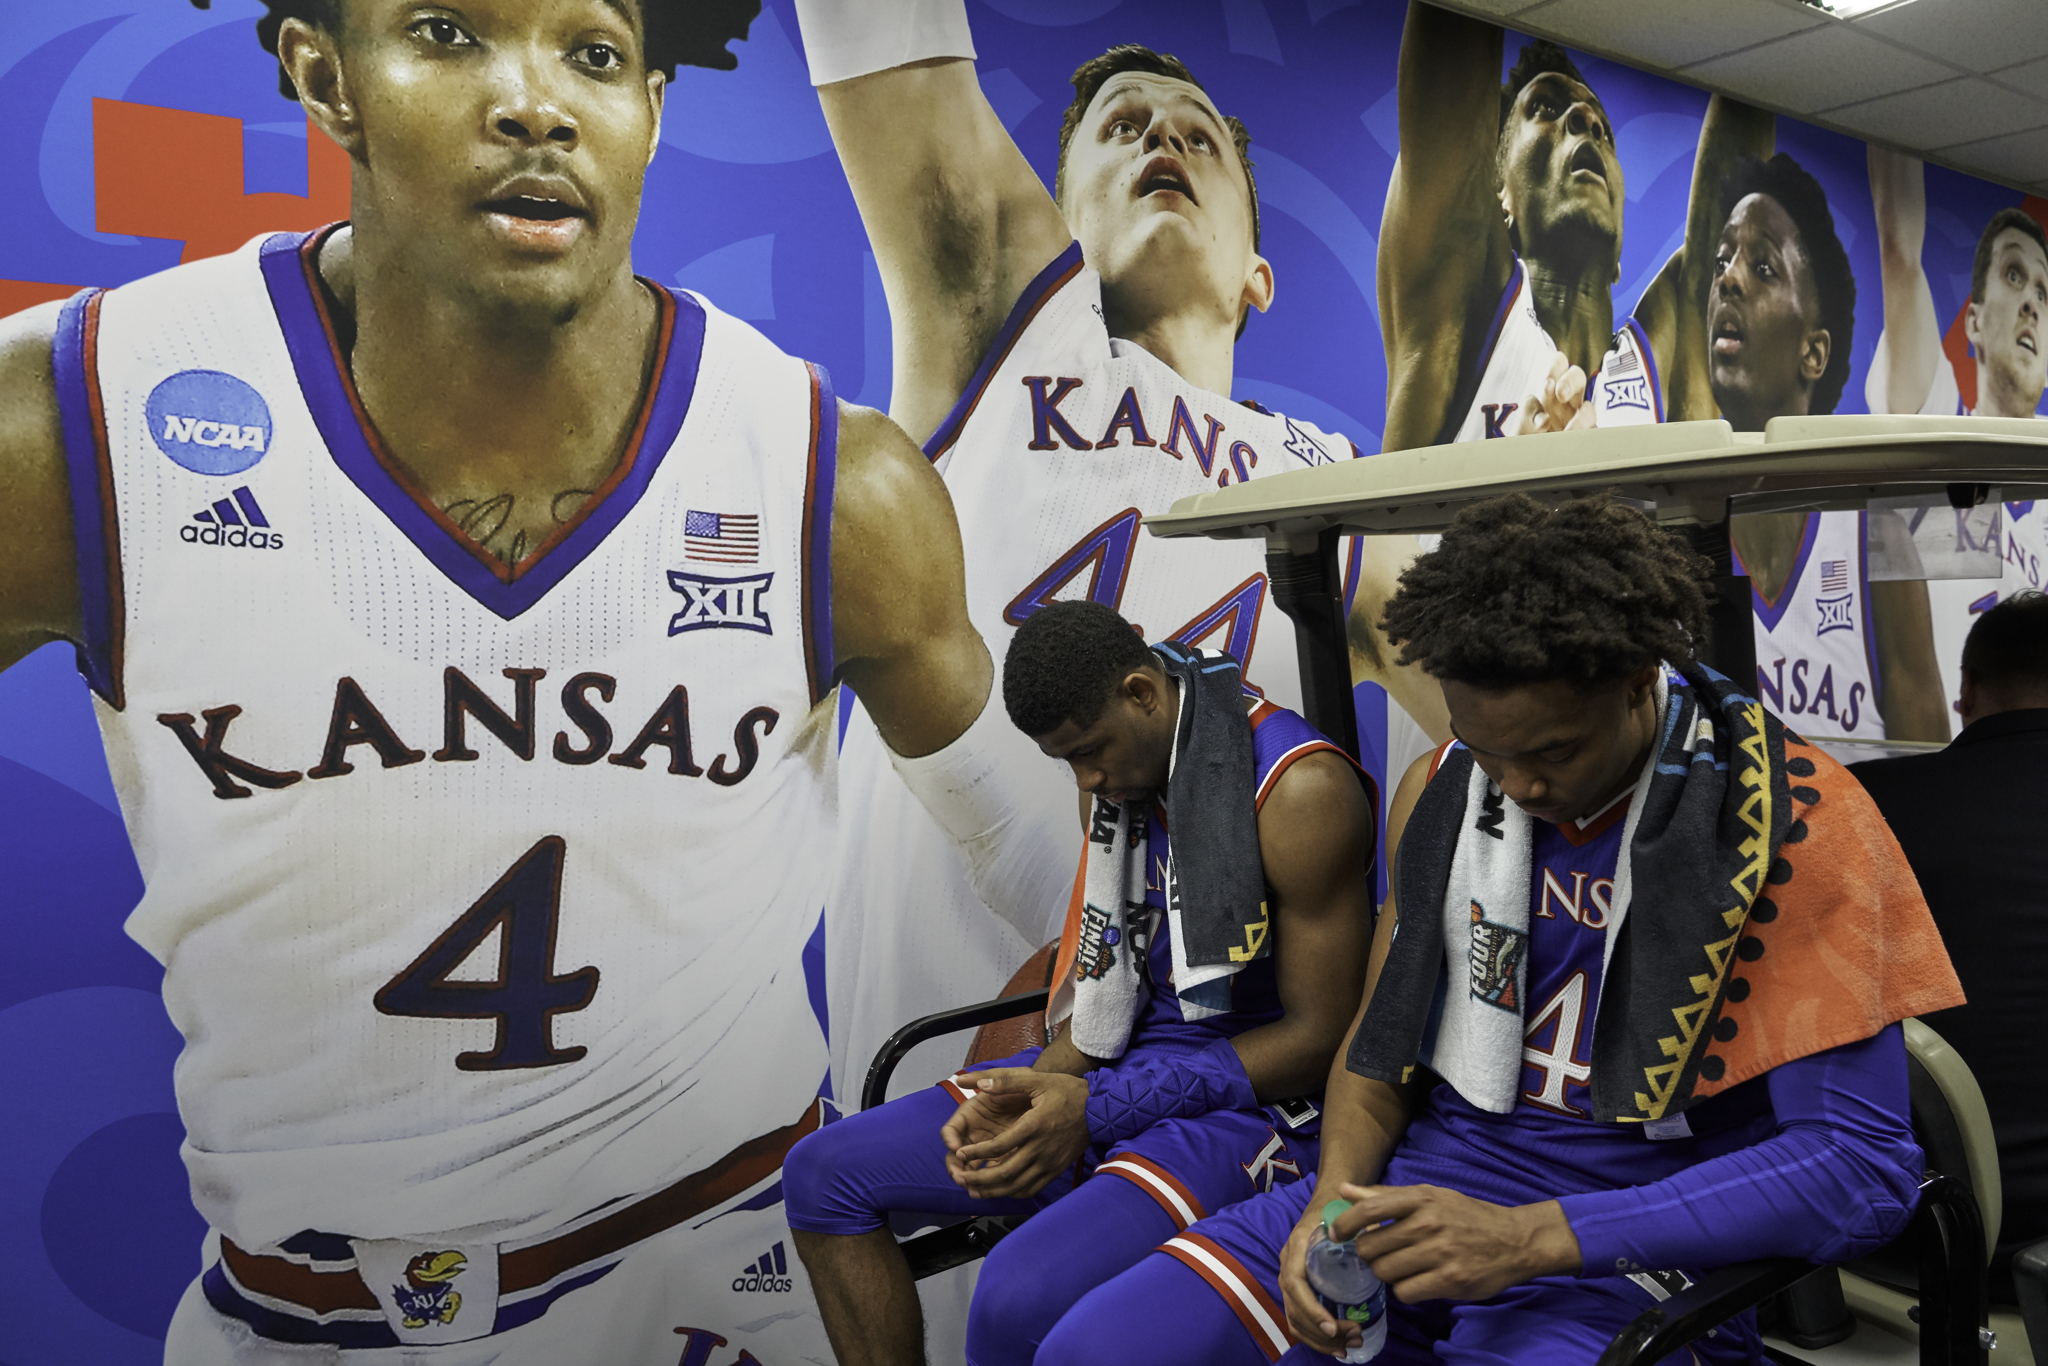 Beneath a familiar face, Devonte' Graham waits outside the locker room to be taken to the post-game press conference.   Sony A9, Sony 70-200mm f2.8 GM